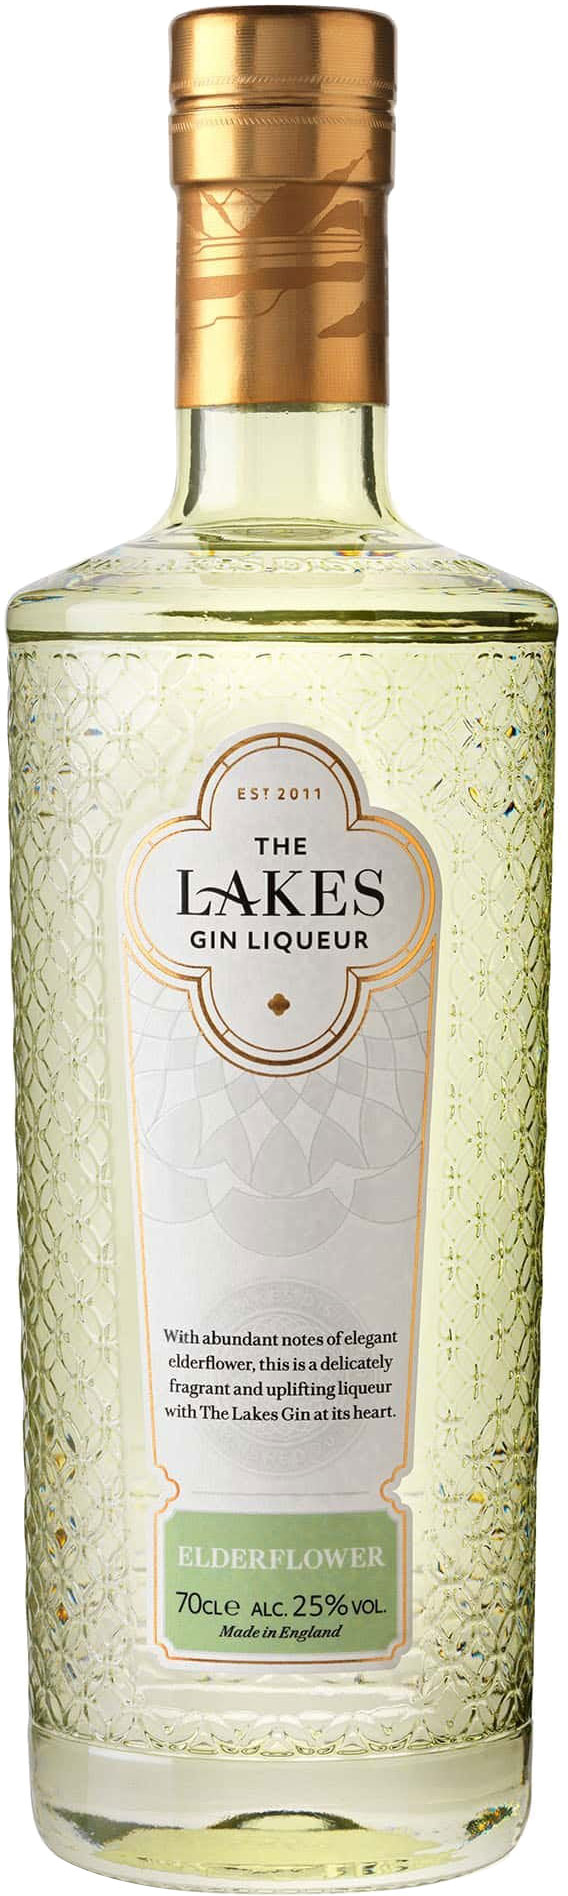 The Lakes - Elderflower Gin Liqueur 70cl Bottle